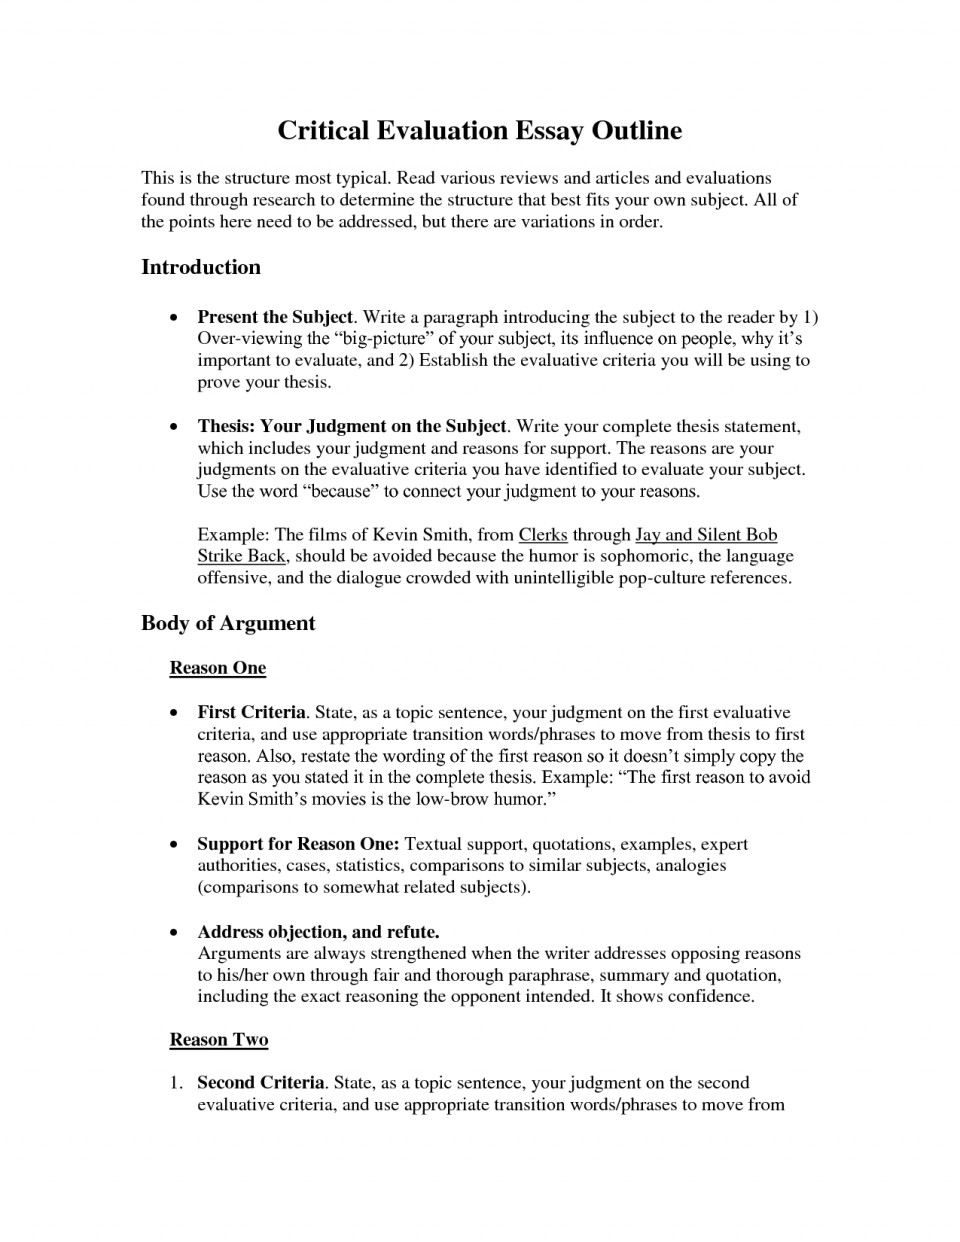 004 Critical Evaluation Essay Example Sample L Incredible Book Samples On Movies Self Format 960